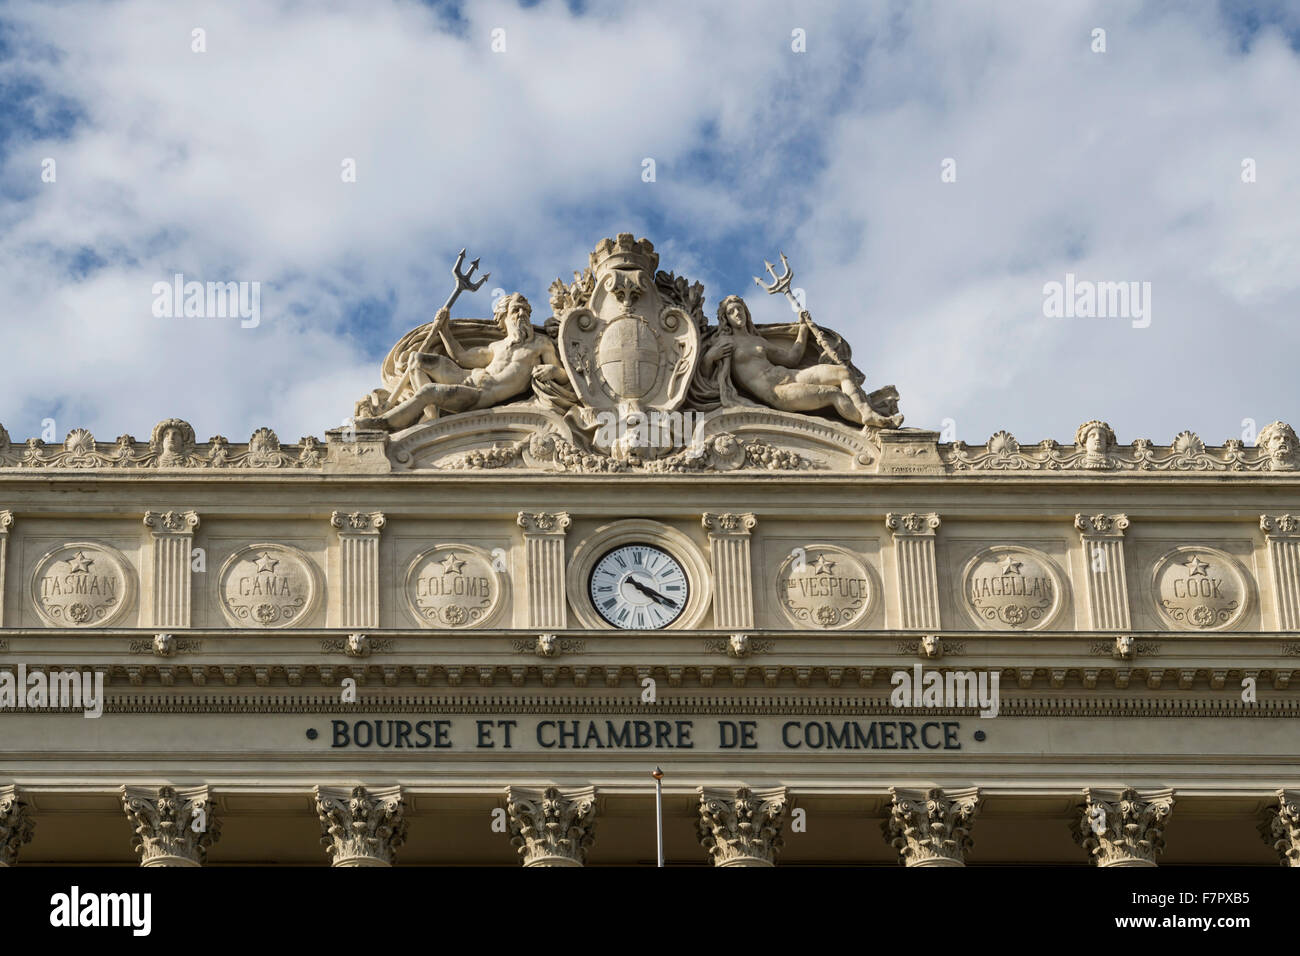 Marseille Stock Exchange and Chamber of Commerce - Stock Image